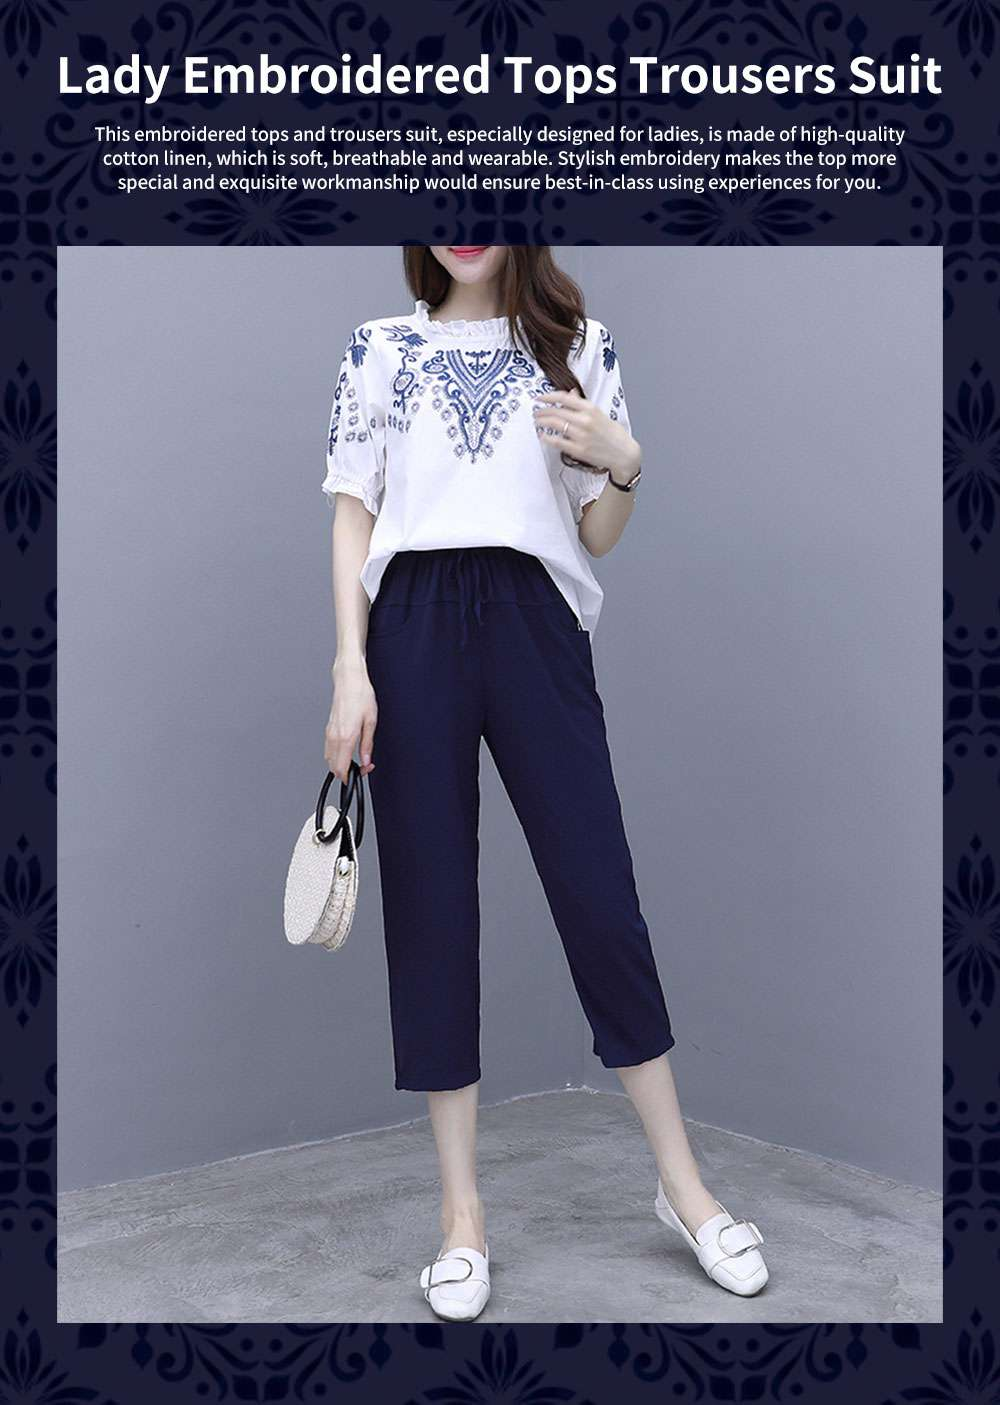 Elegant Casual Summer Lady Embroidered Tops Trousers Suit Breathable Cotton Linen Atmosphere Feet Ninth Pants for Women 0